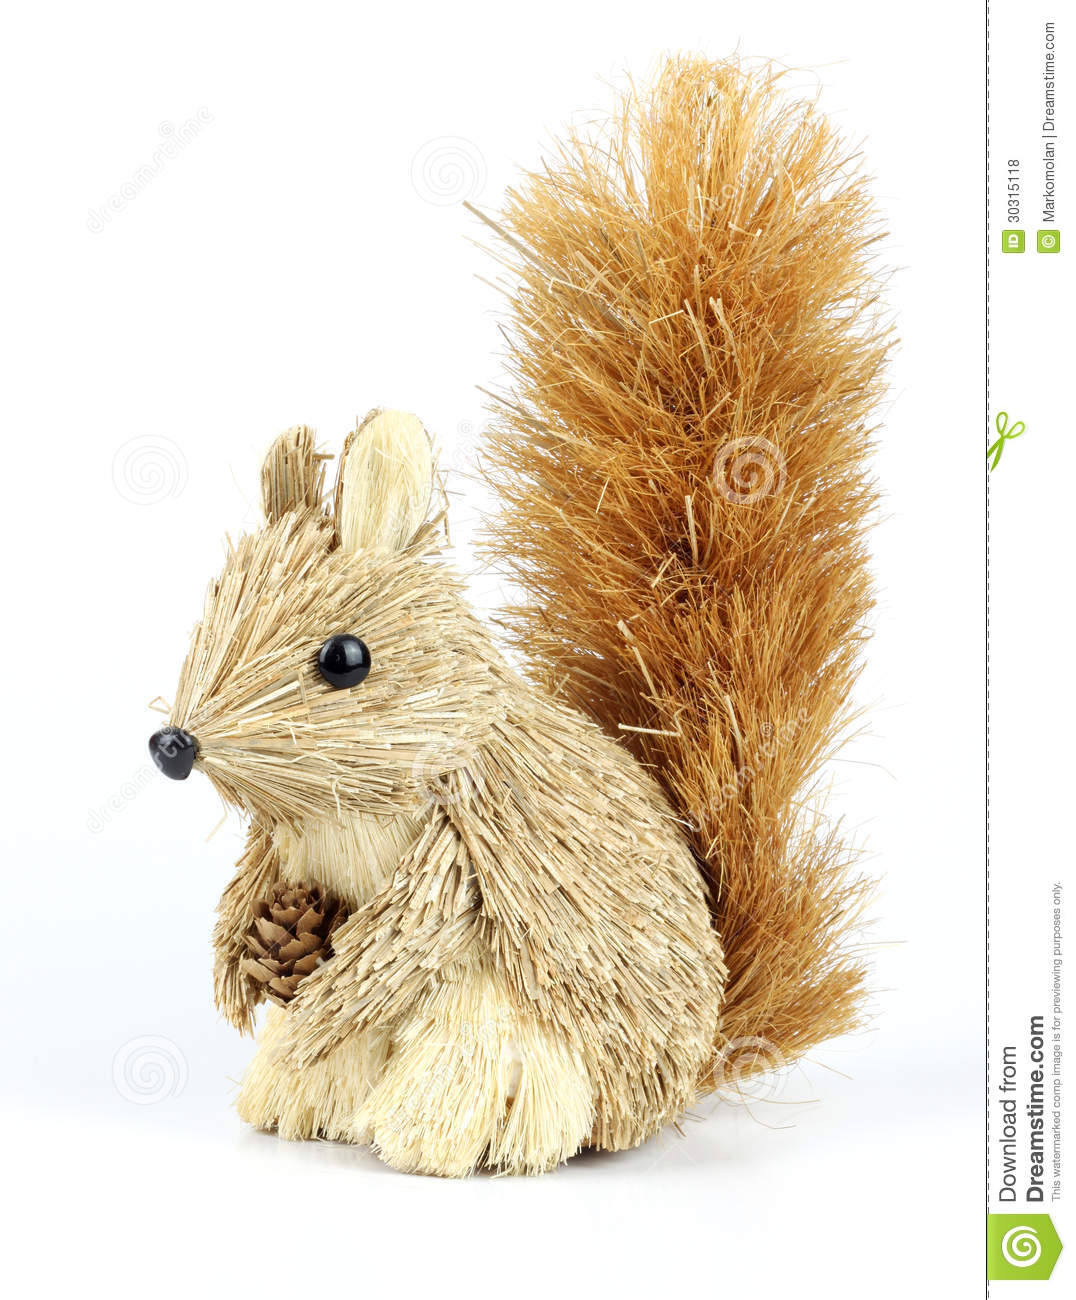 Decorative squirrel